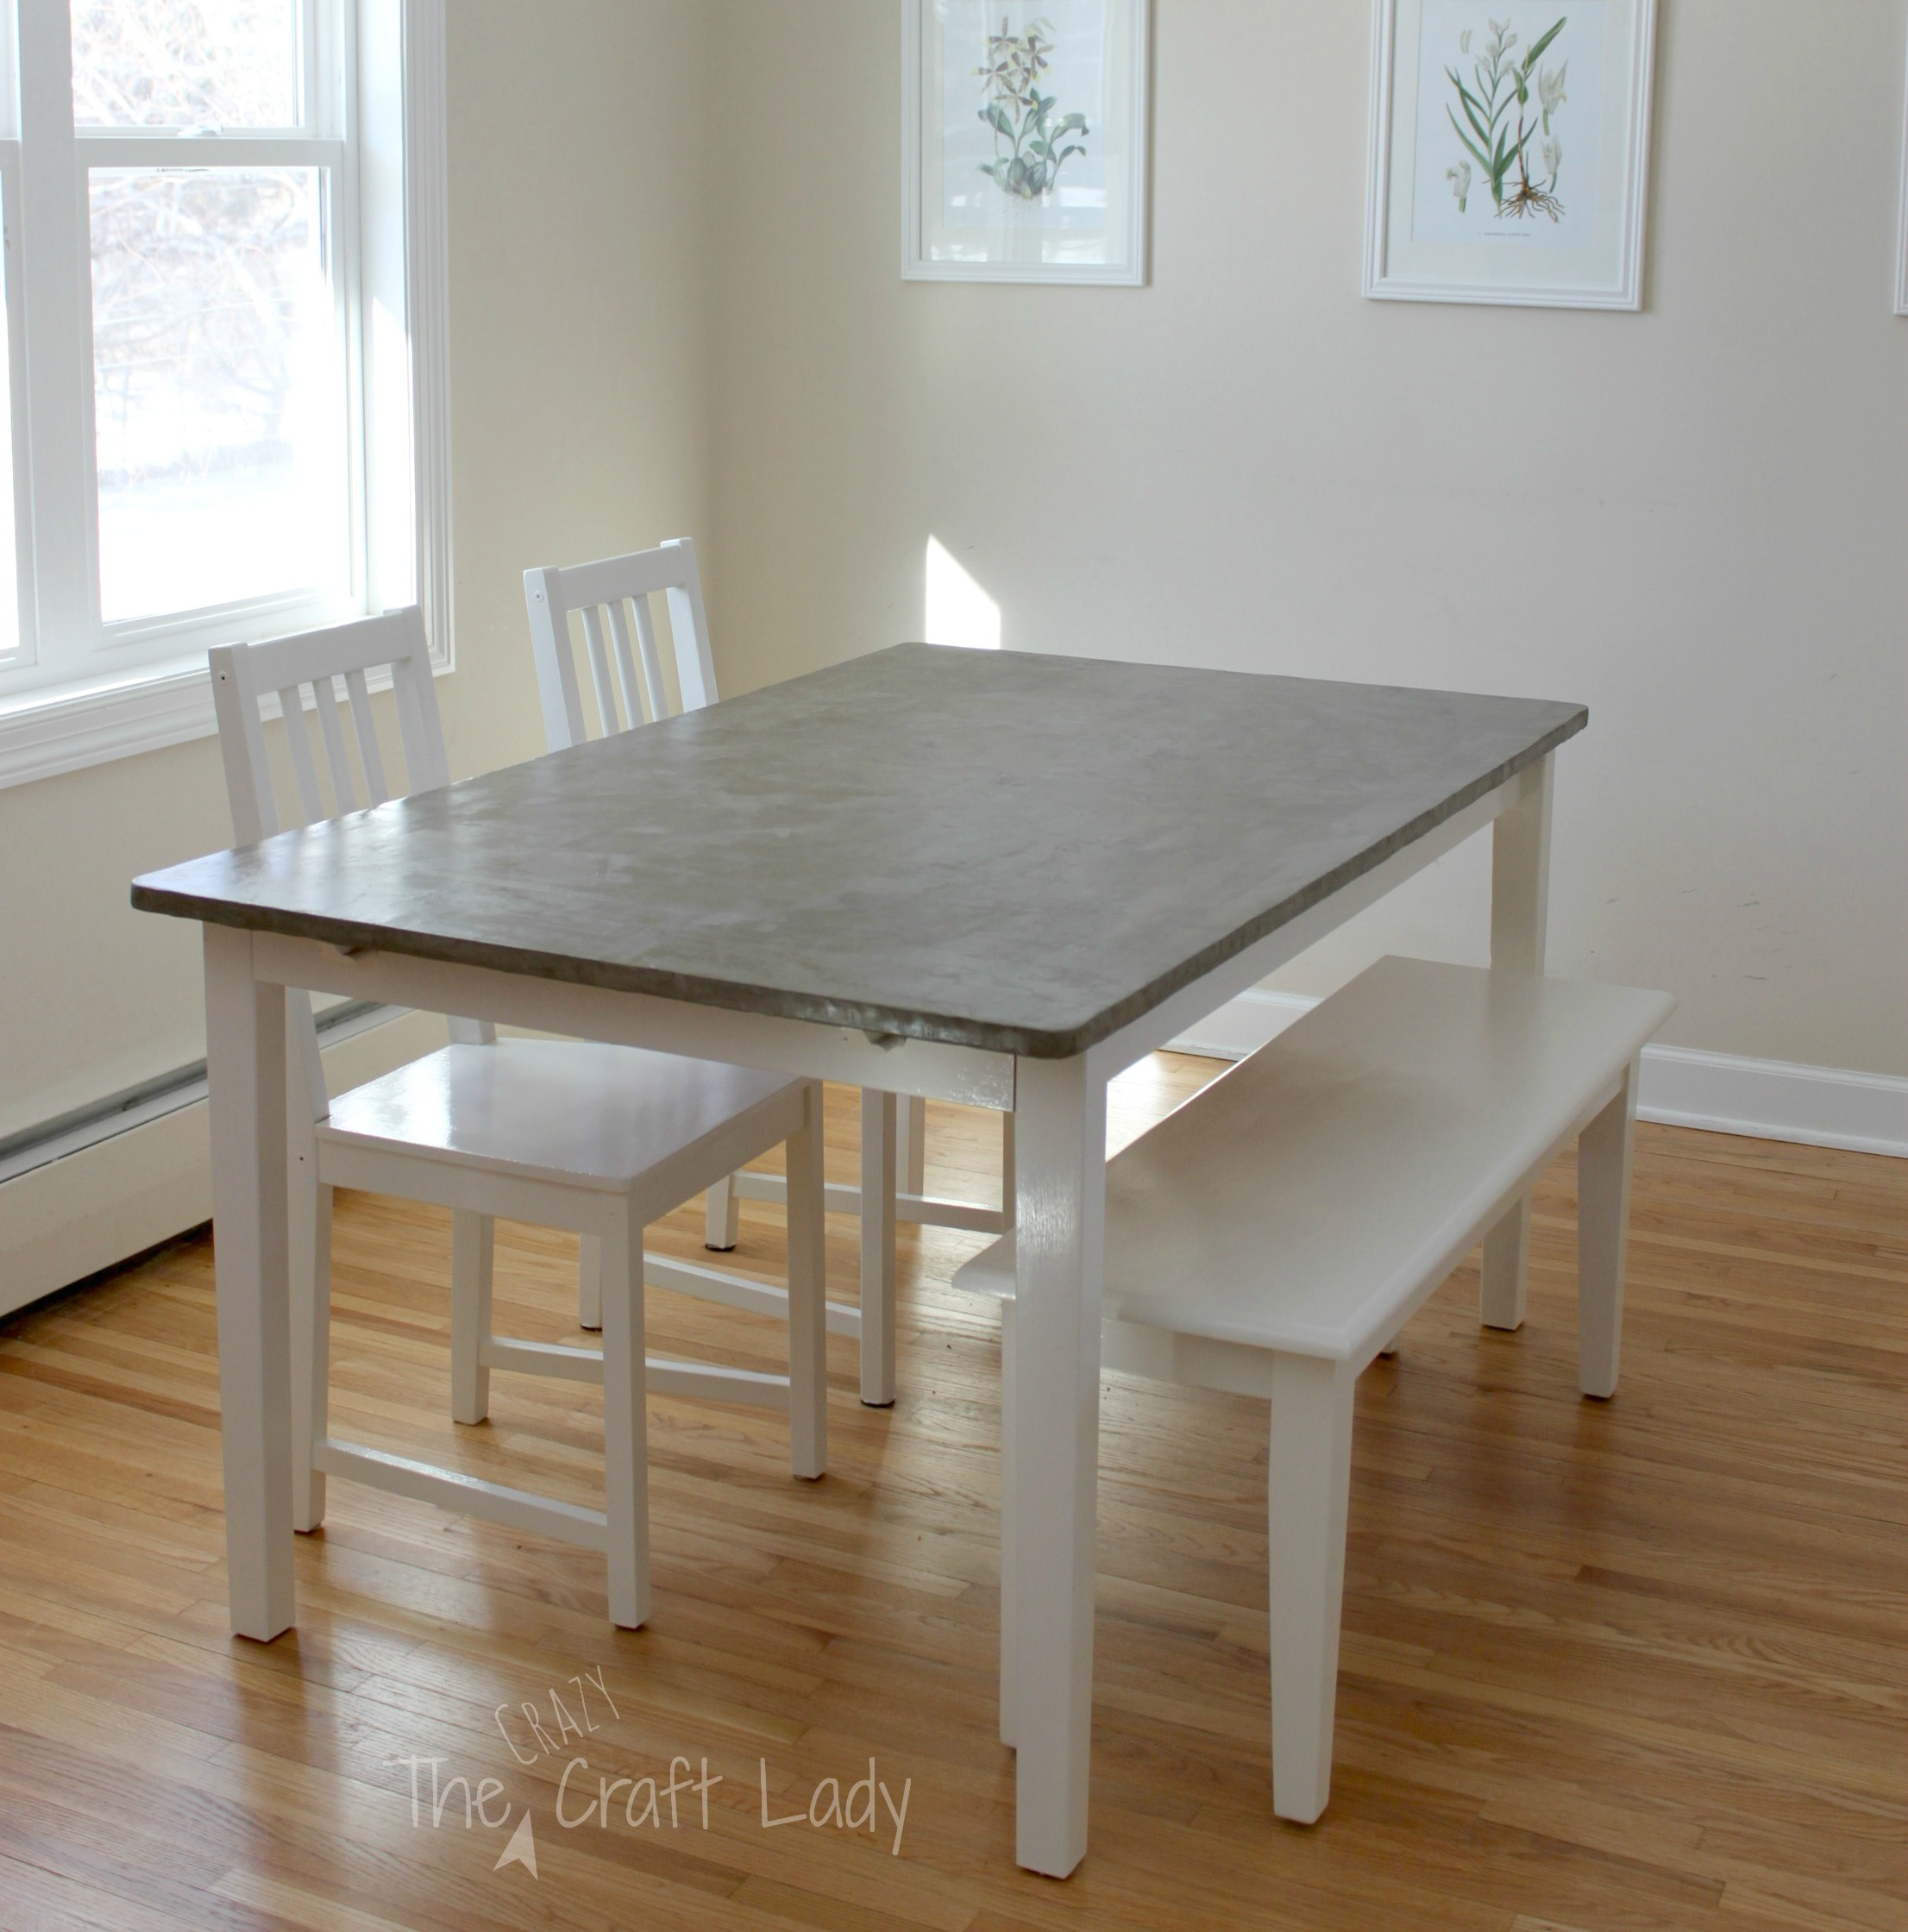 Diy dining table top large and beautiful photos photo for Table top design